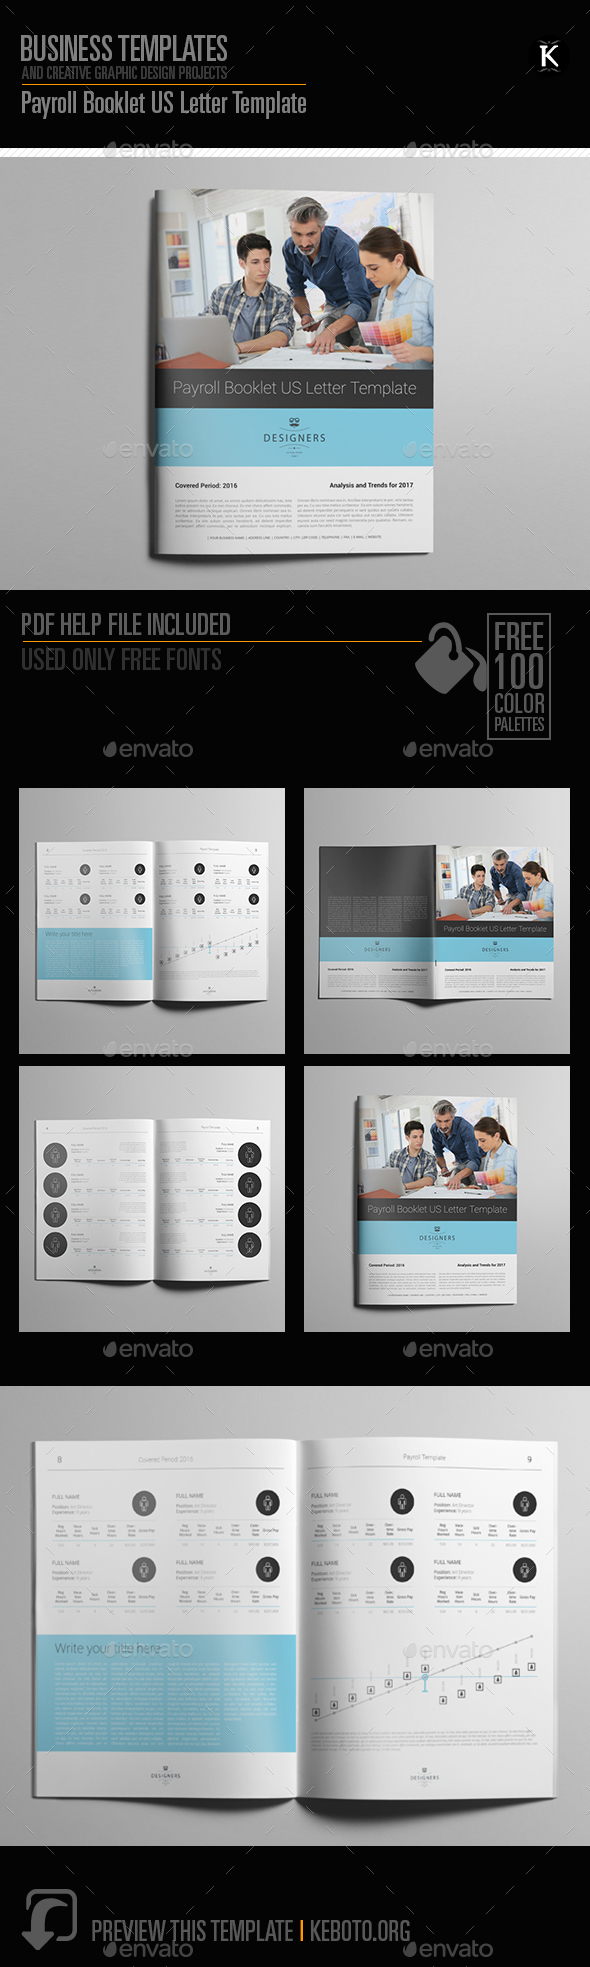 GraphicRiver Payroll Booklet US Letter Template 20594653